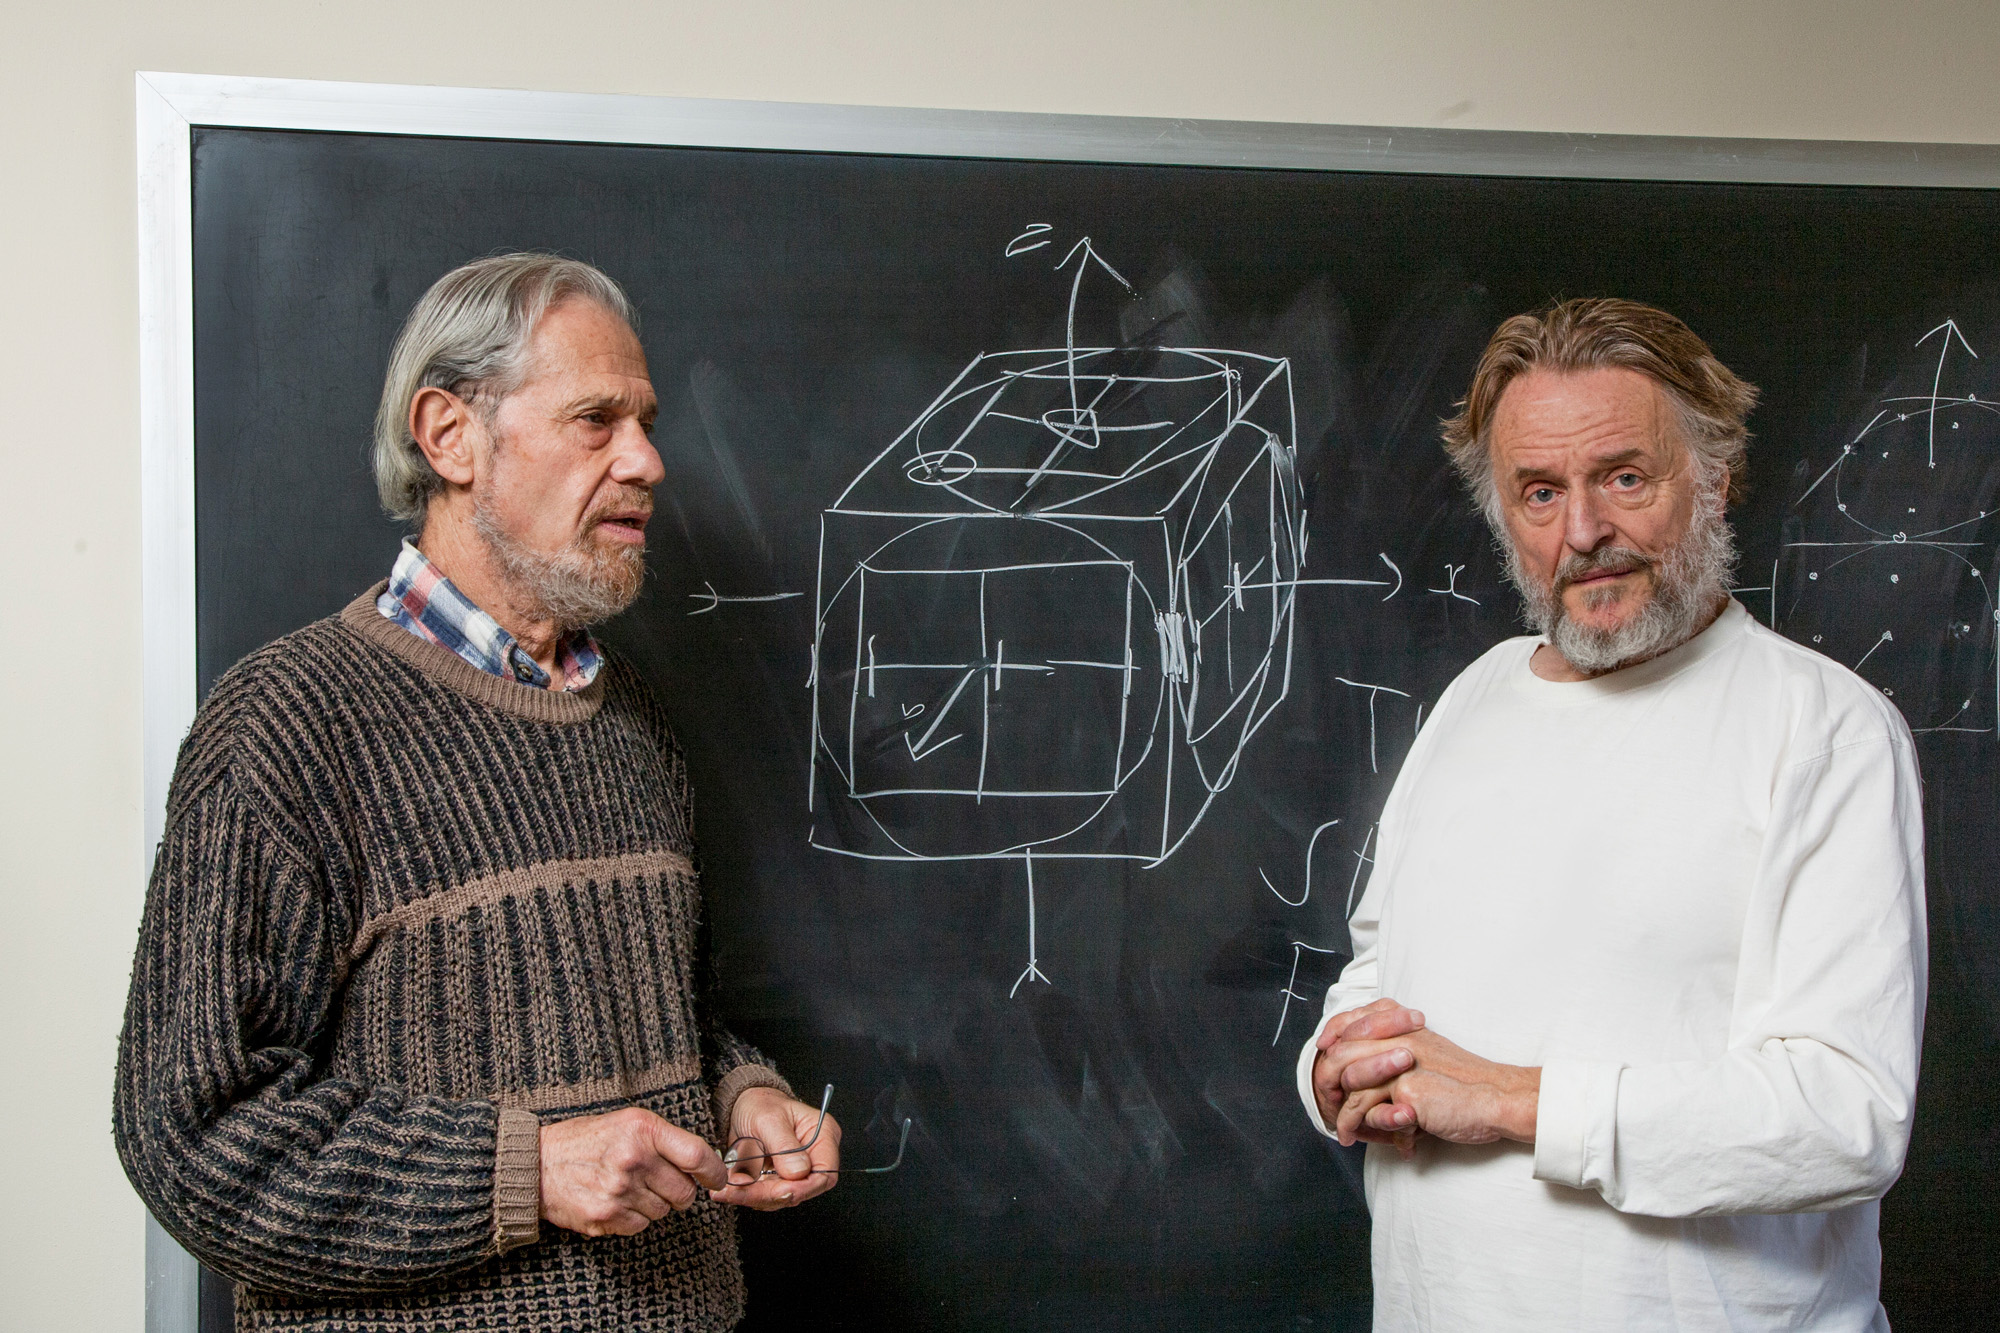 Photo of John Conway and Simon Kochen in front of a chalkboard